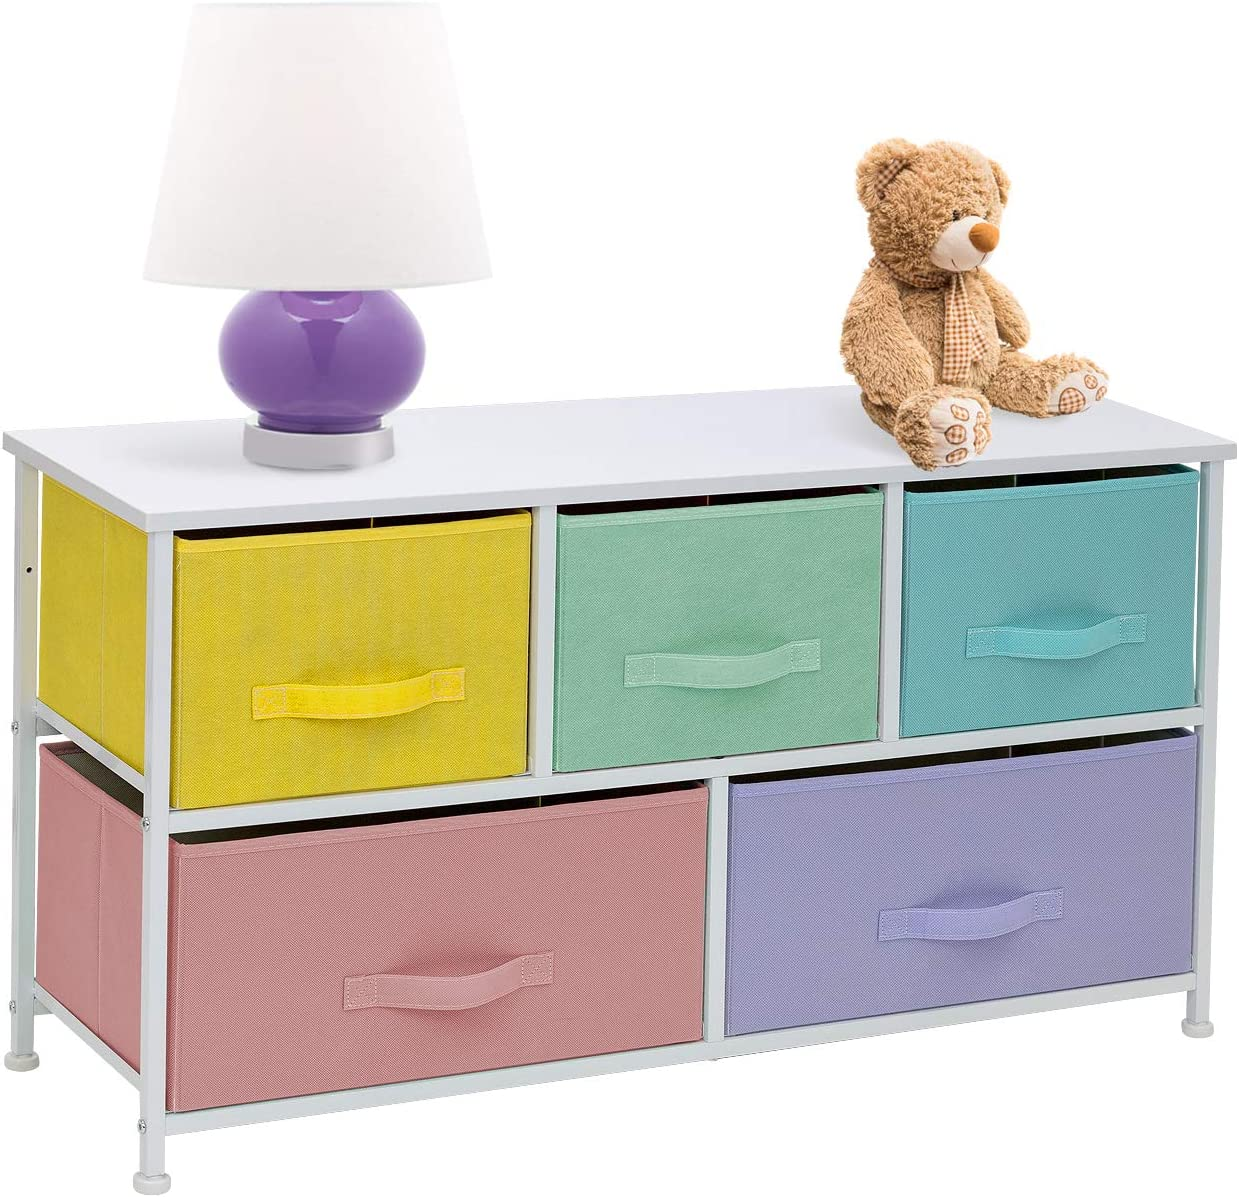 Sorbus Dresser with 5 Drawers – Furniture Storage Chest for Kid s, Teens, Bedroom, Nursery, Playroom, Clothes, Toys – Steel Frame, Wood Top, Fabric Bins Multi Pastel White